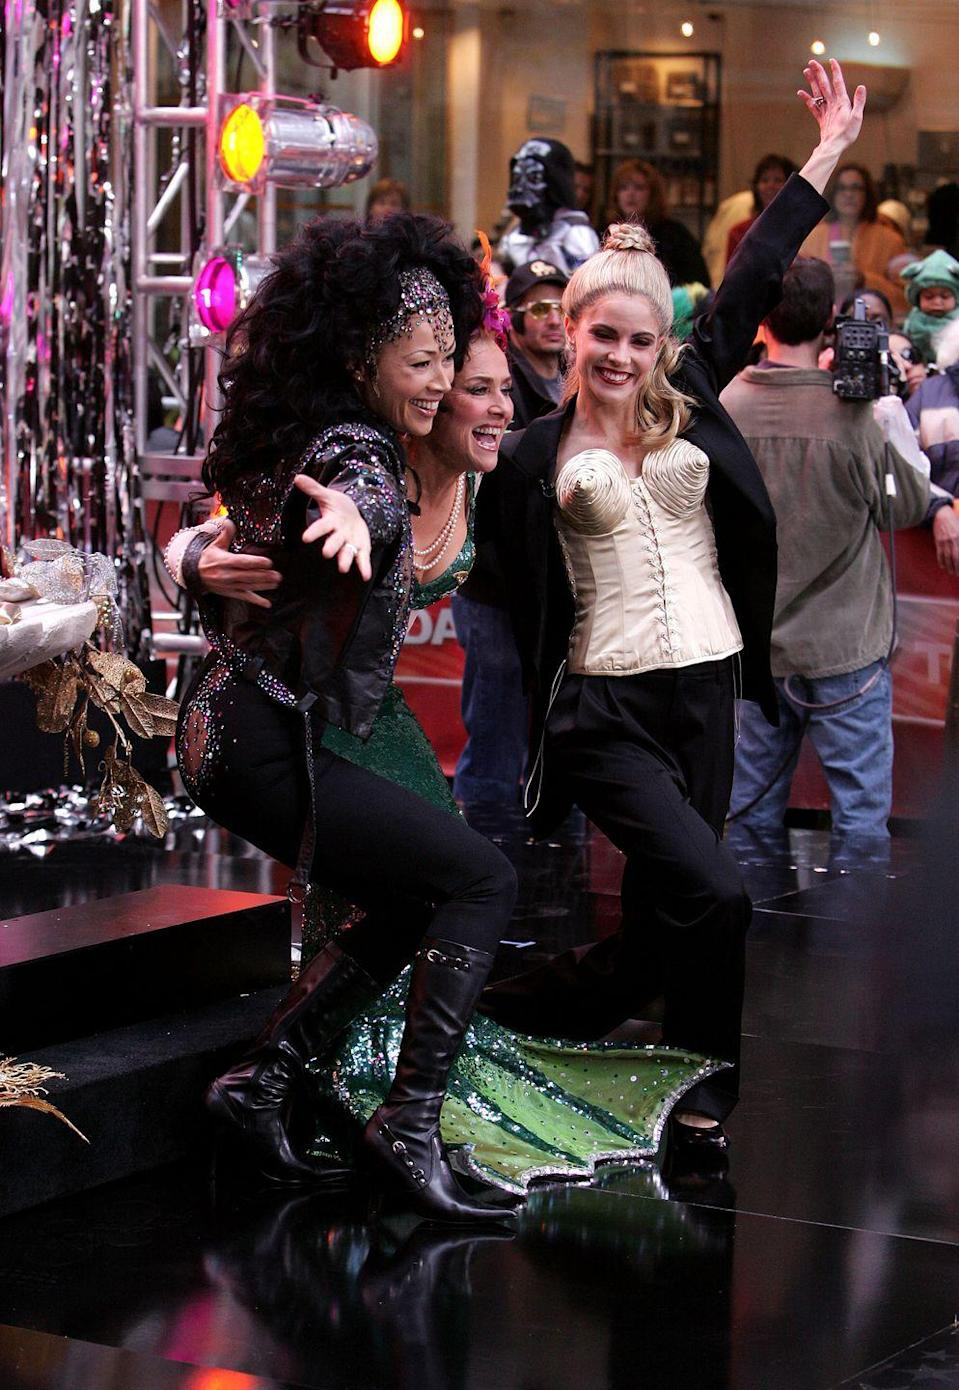 <p>The fabulous and nautical party continues with Ann Curry as music mogul Cher and Meredith Vieira as Bette Midler's mermaid character Delores DeLago in <em>The Showgirl Must Go On. </em></p>